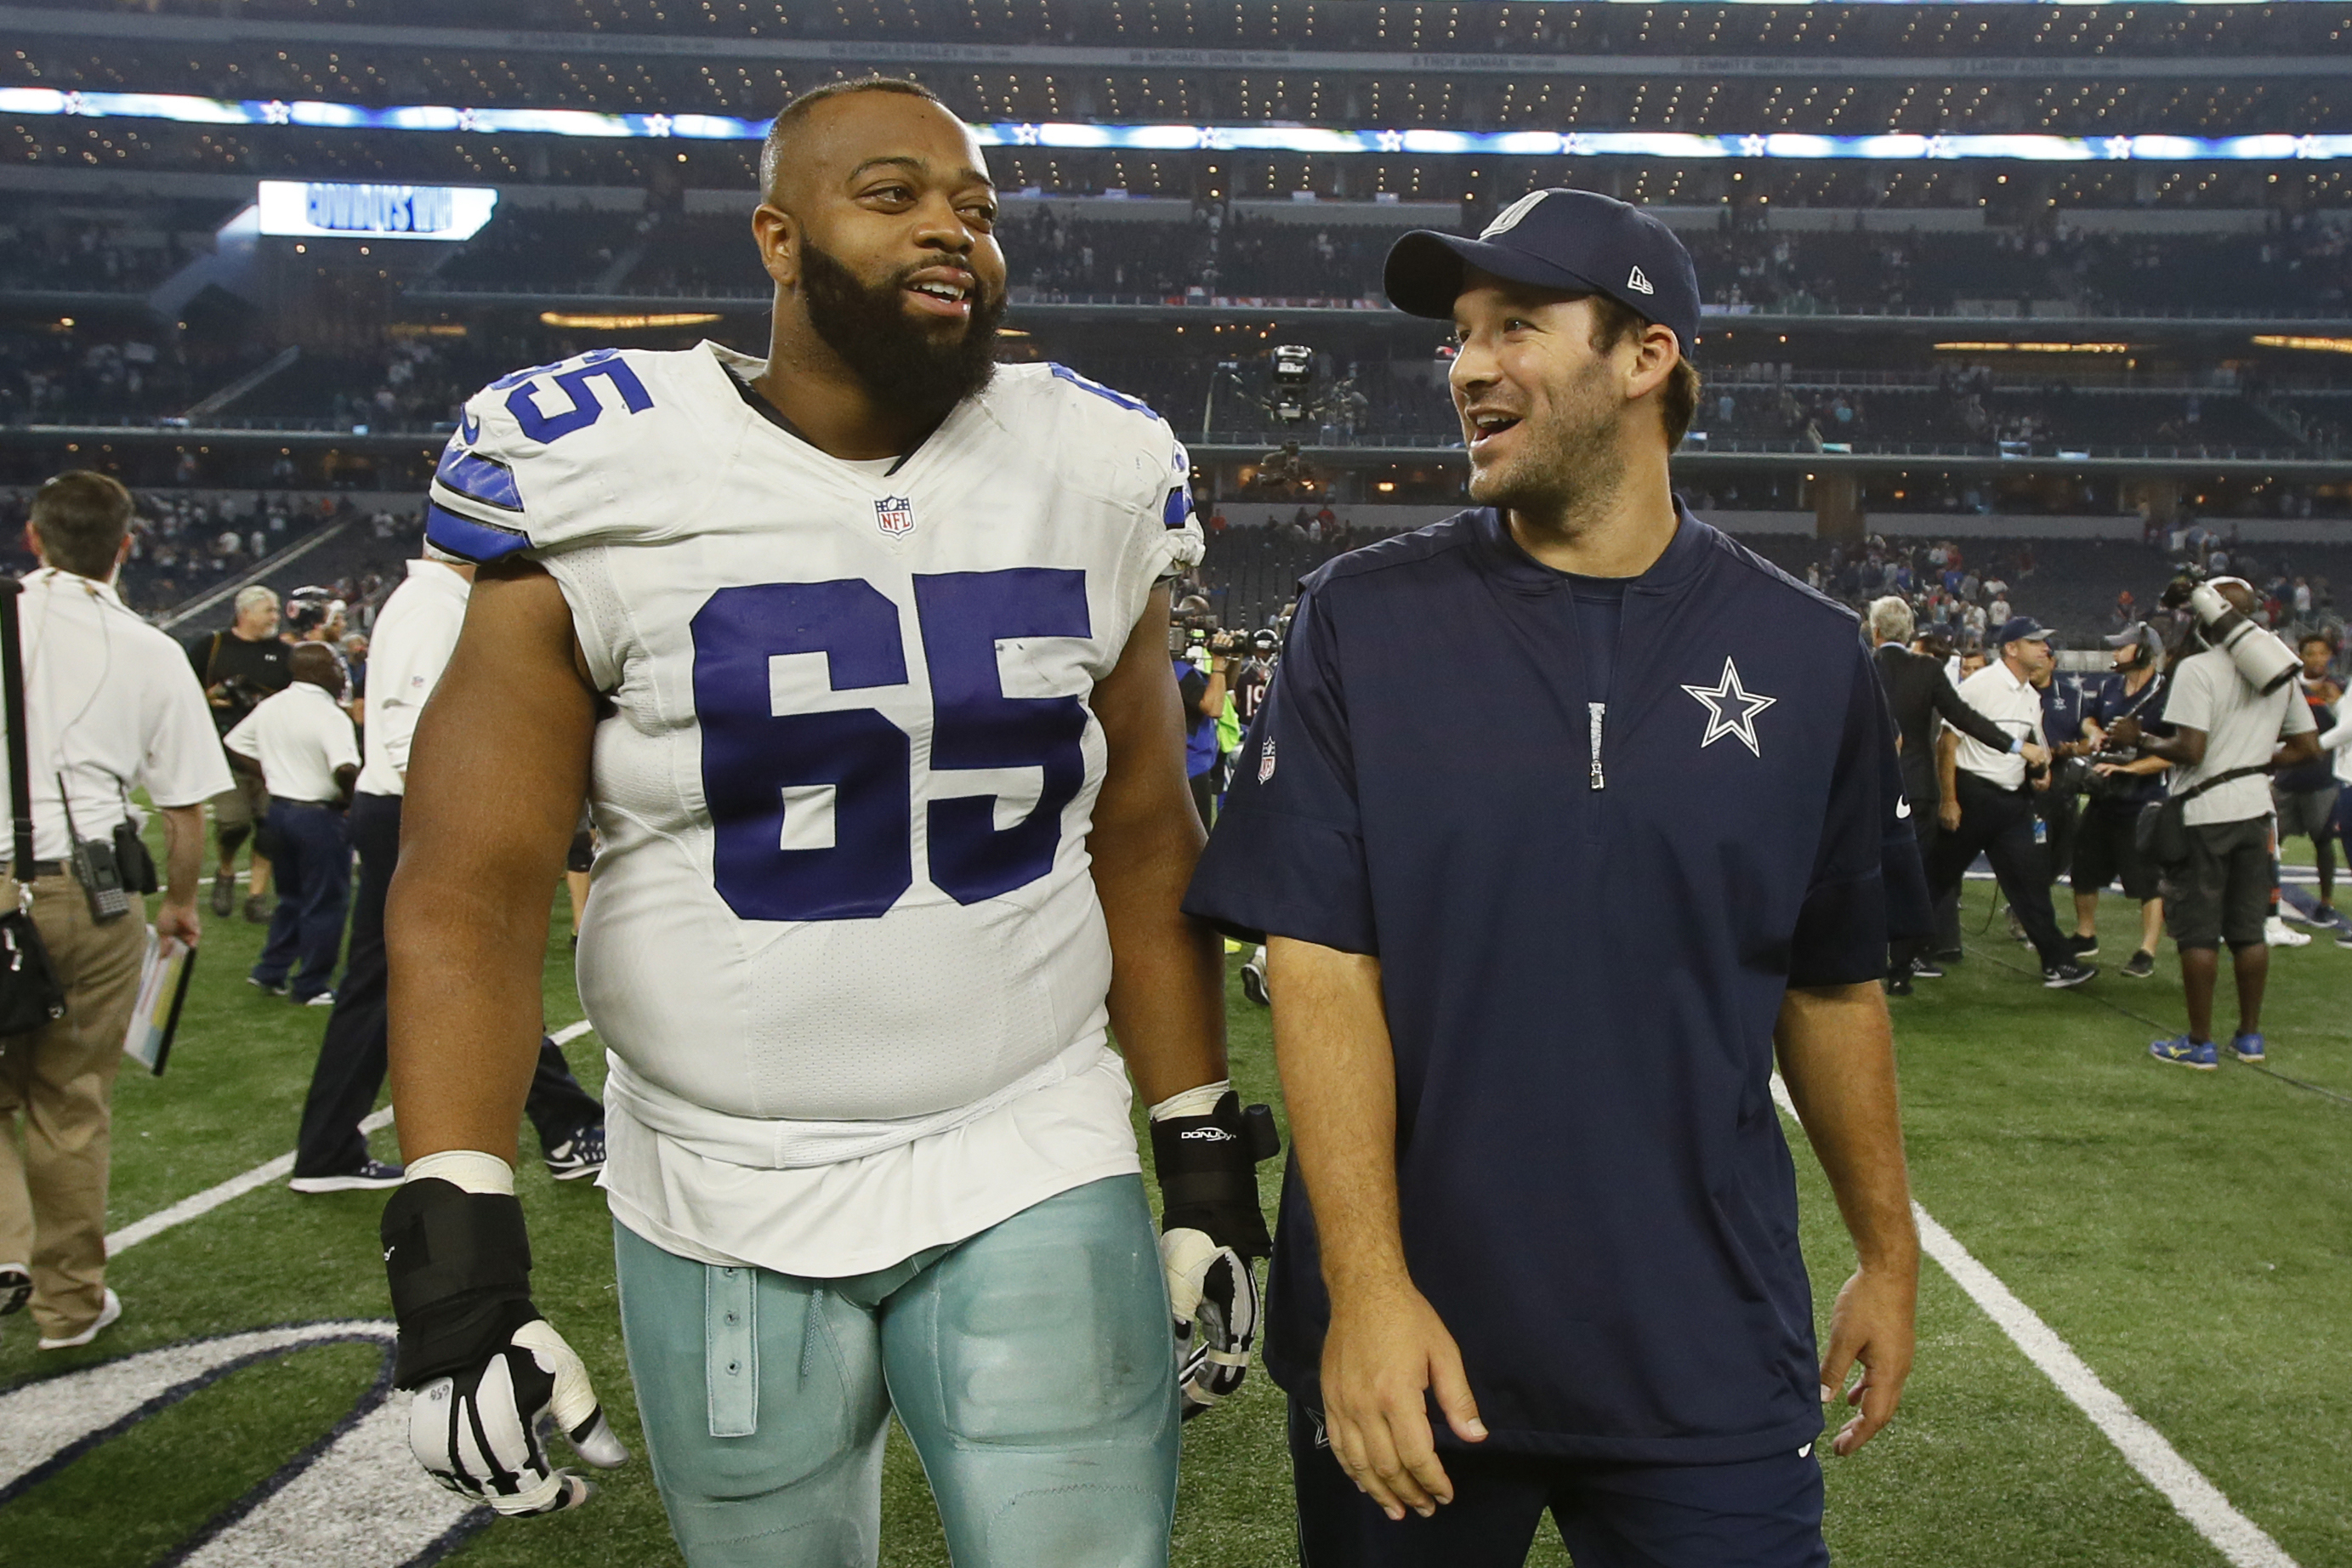 9566674-nfl-chicago-bears-at-dallas-cowboys-1